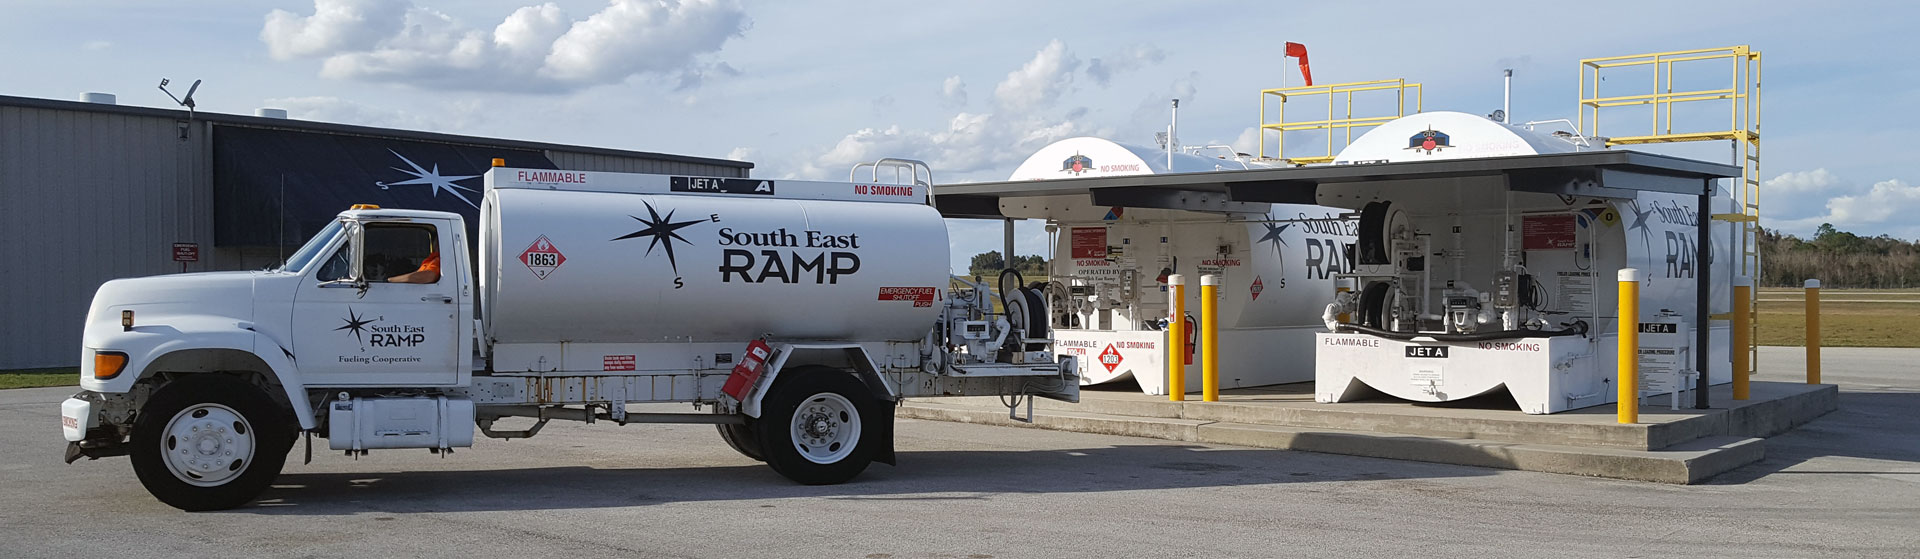 Fuel Truck and Fuel Pumps